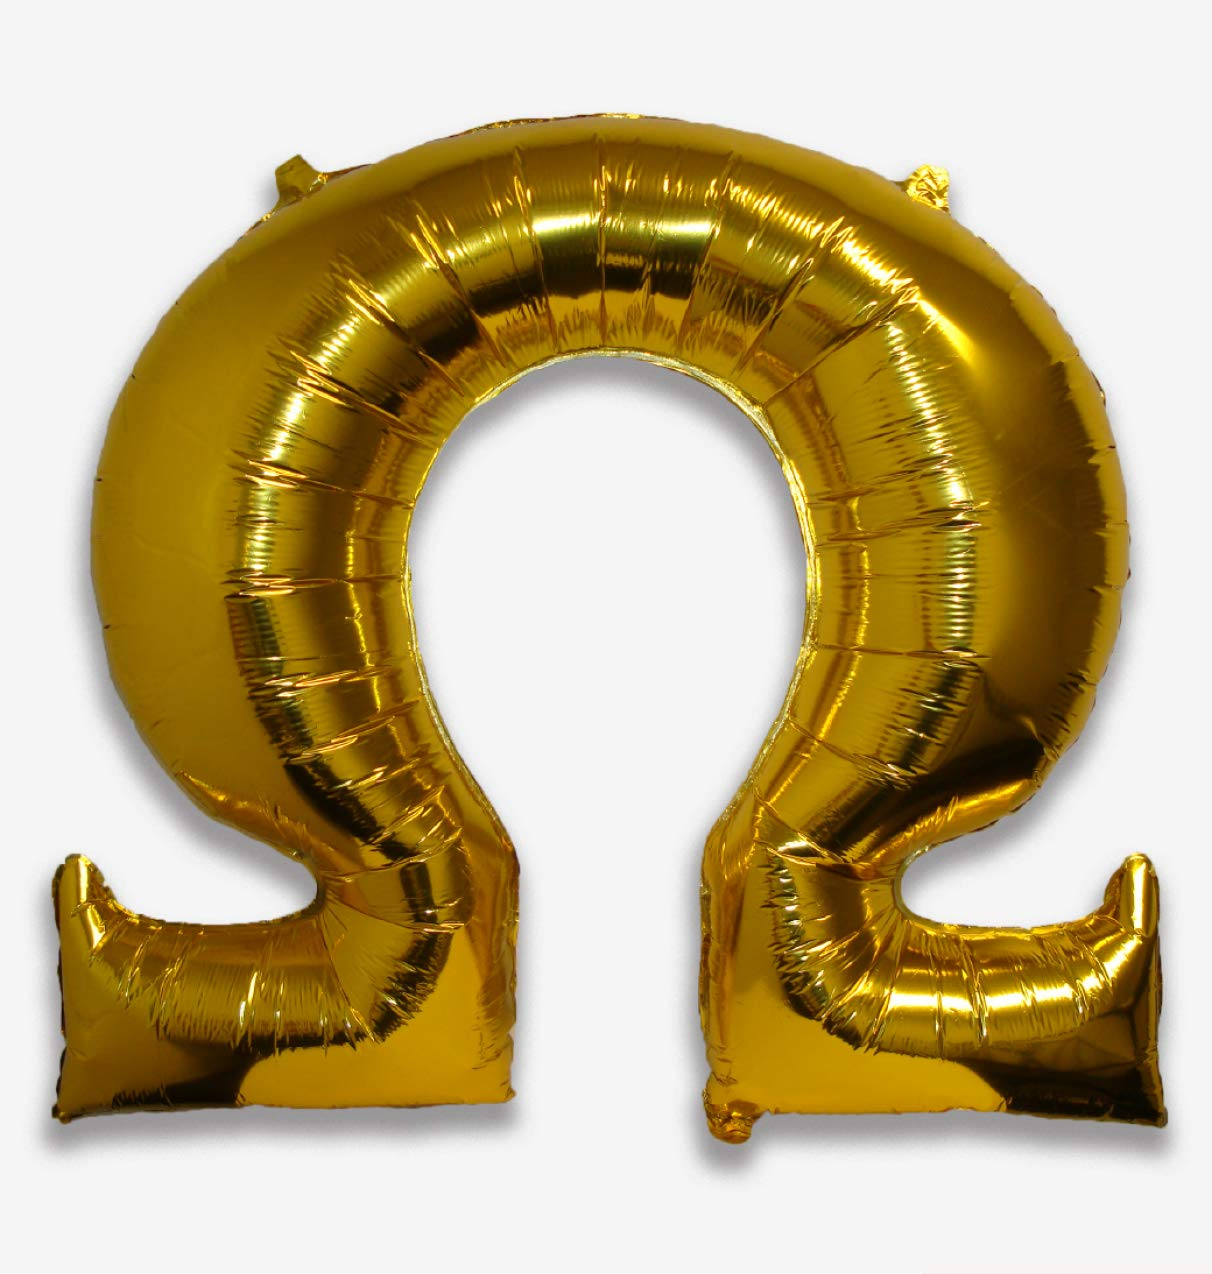 Amazon.com: Omega   Greek Letter Balloon: Toys & Games